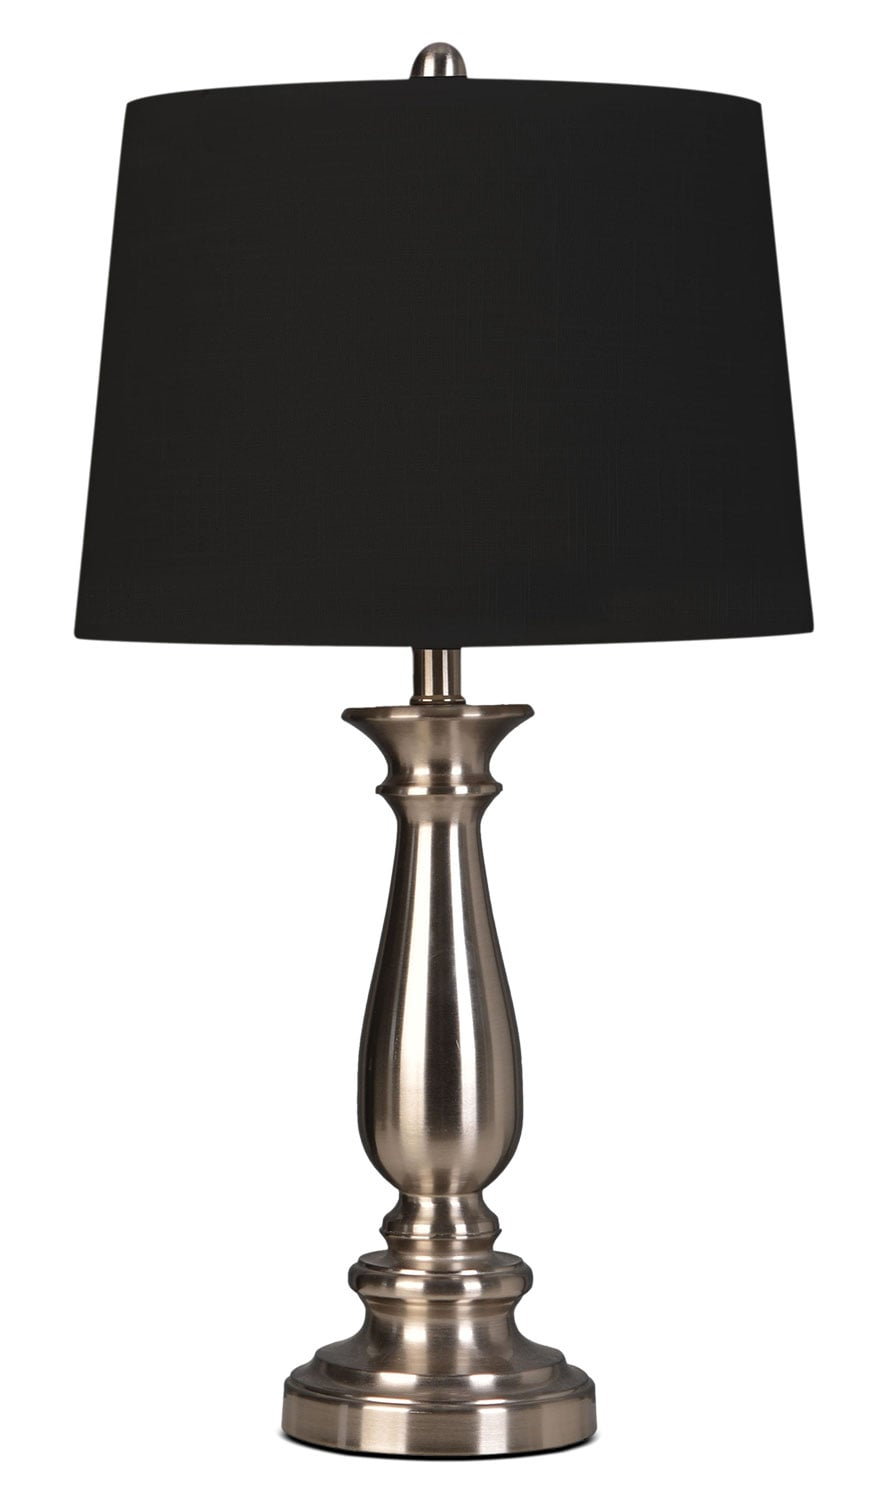 "Accent and Occasional Furniture - Lawrence 25"" Table Lamp - Chrome"